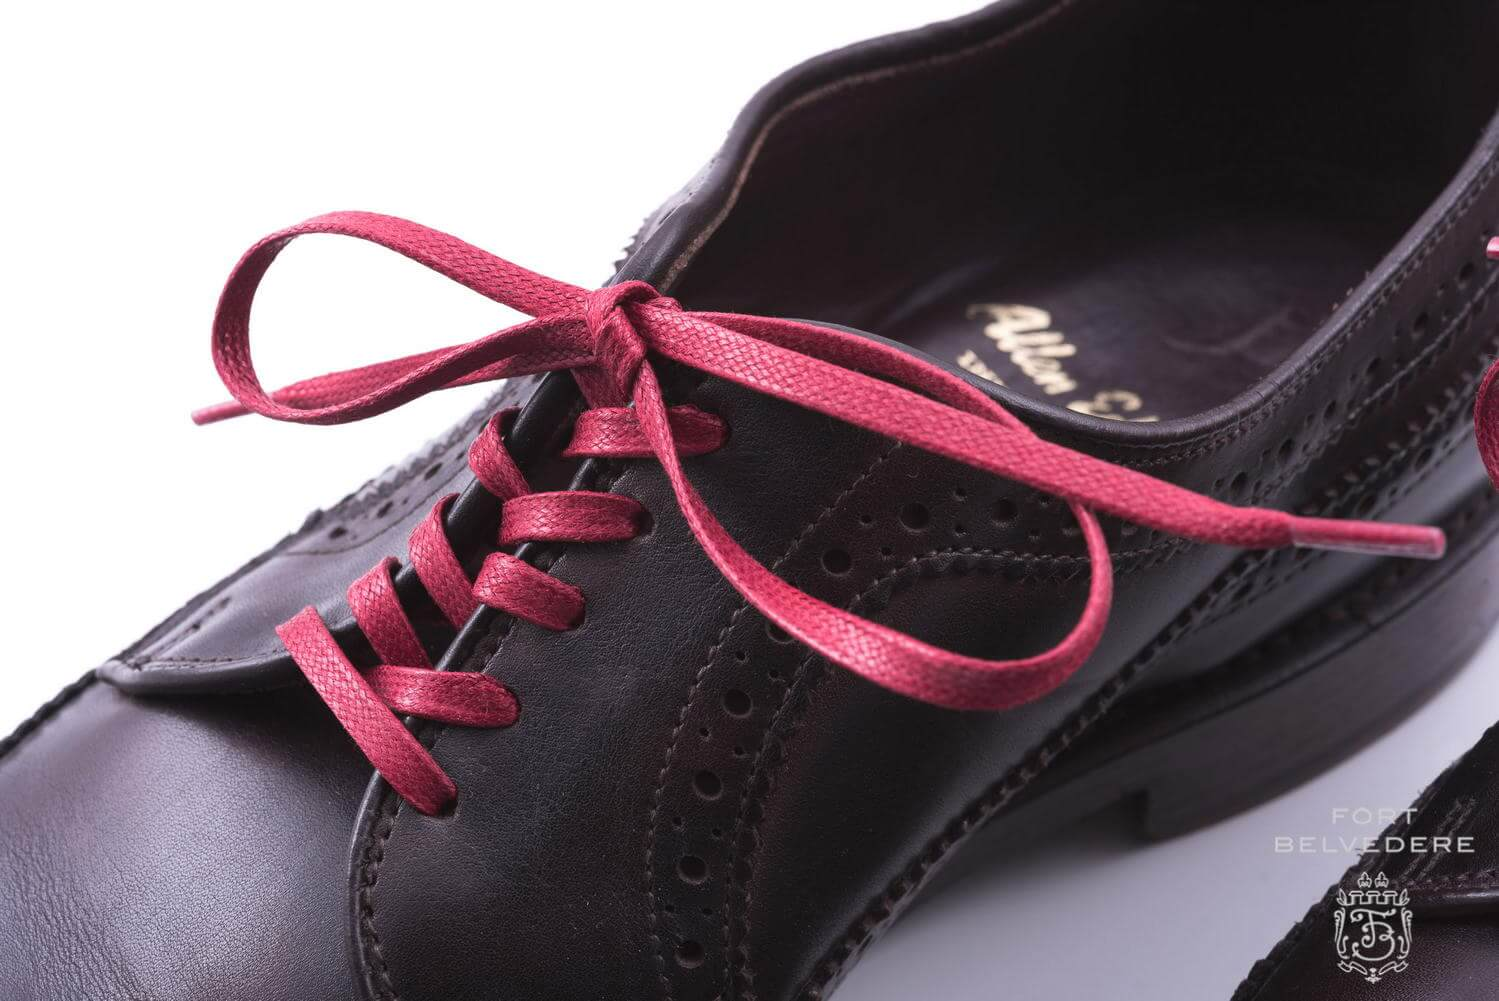 Waxed Shoe Laces Wiki